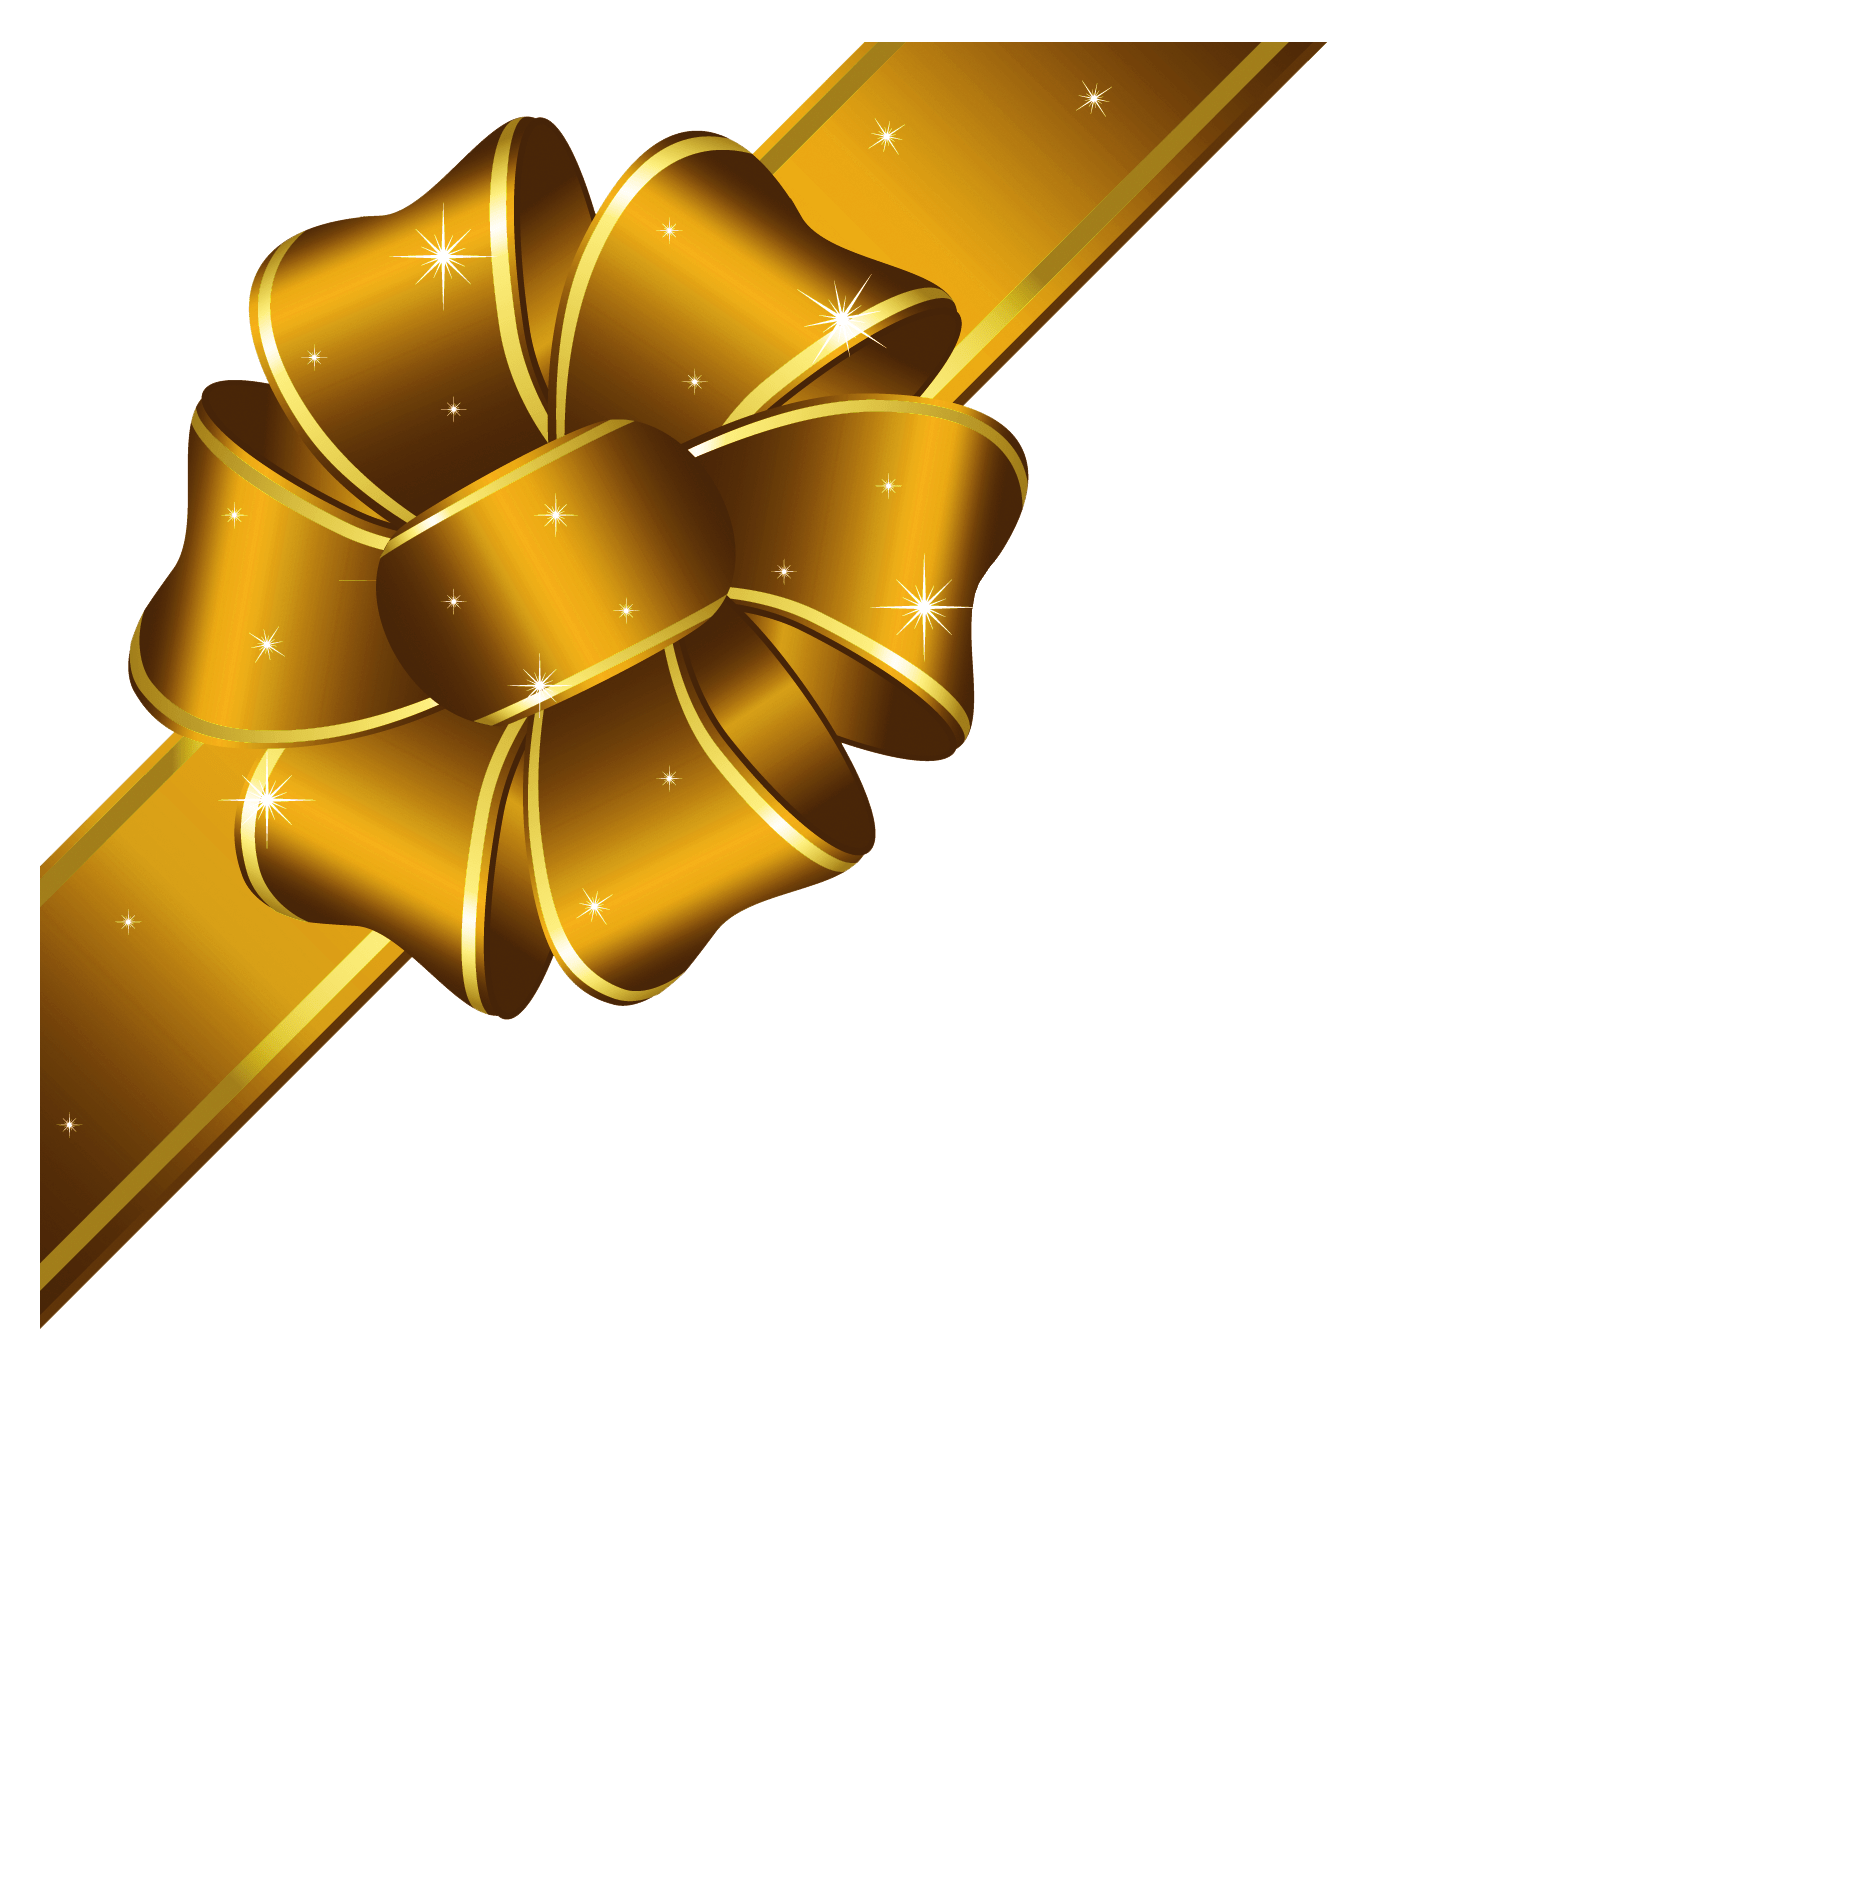 Gold christmas bow clipart 1 » Clipart Portal banner transparent download